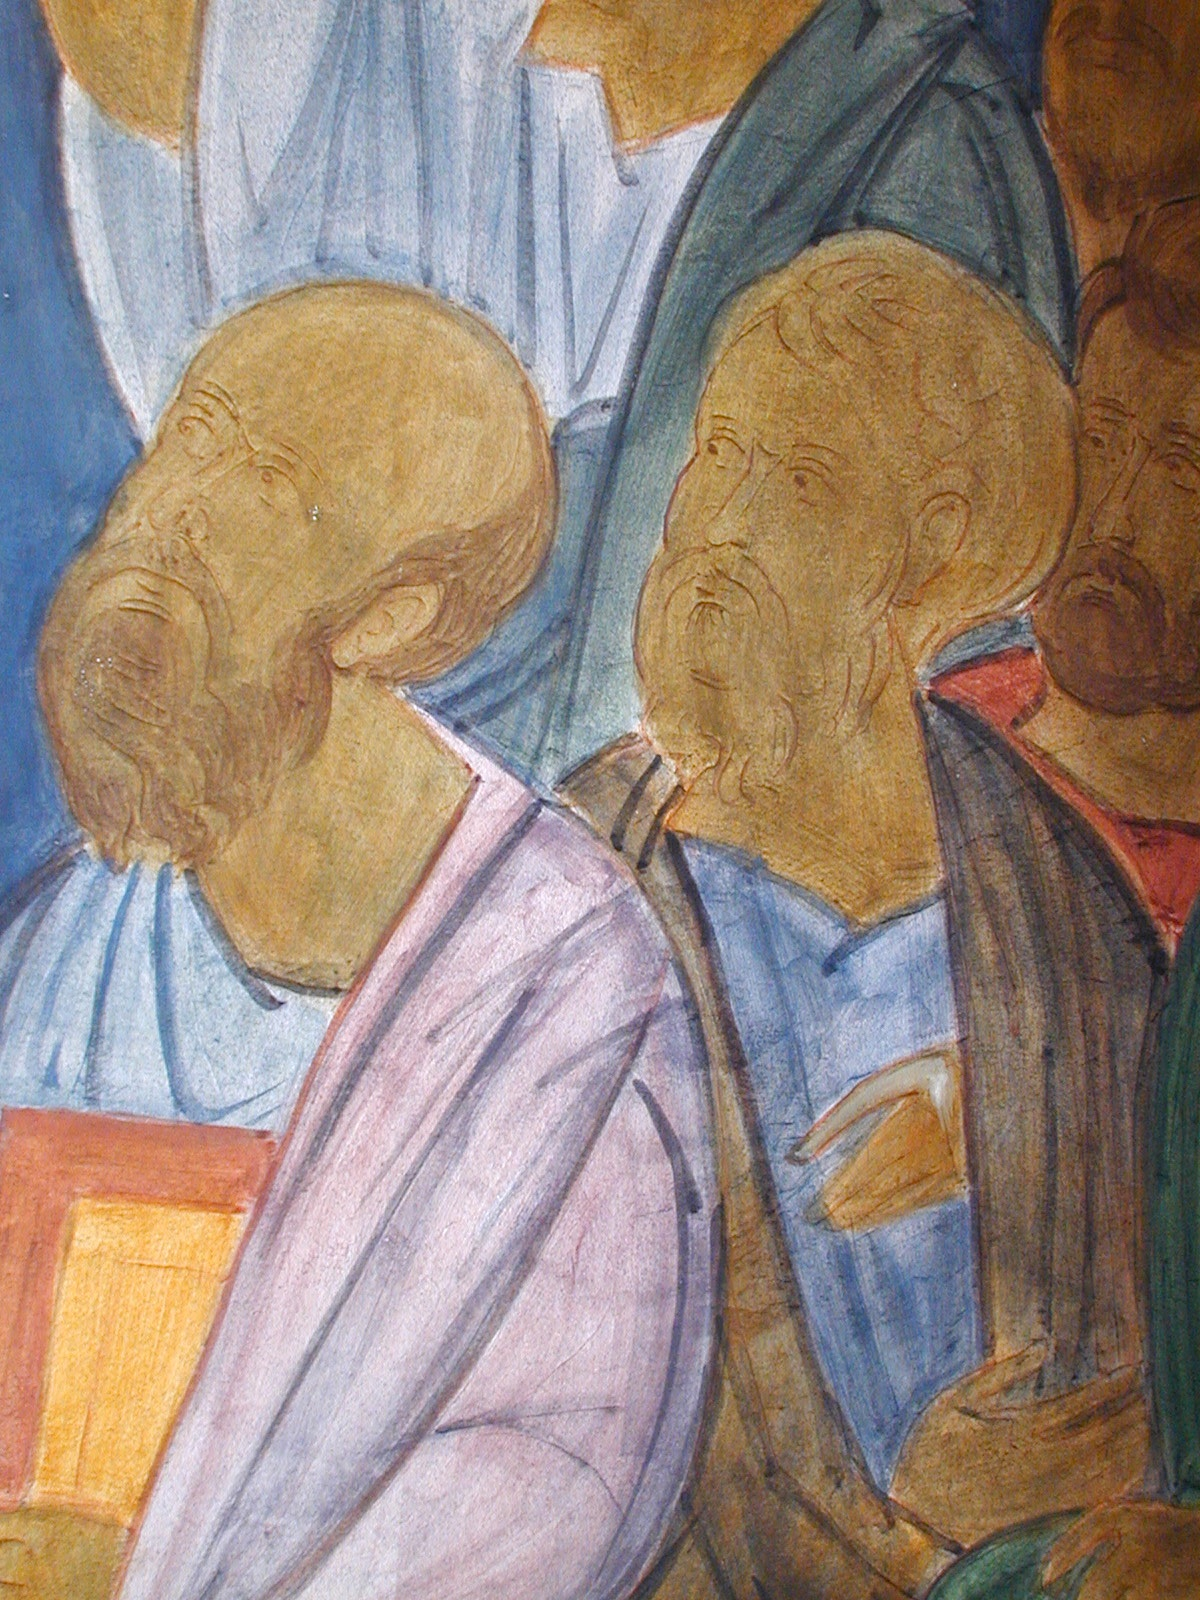 Fig 6.  Saints Paul and Matthew, Details from the Ascension. On the left, the figures have the base colors, lines, and shadows. On the right, the finished icon.